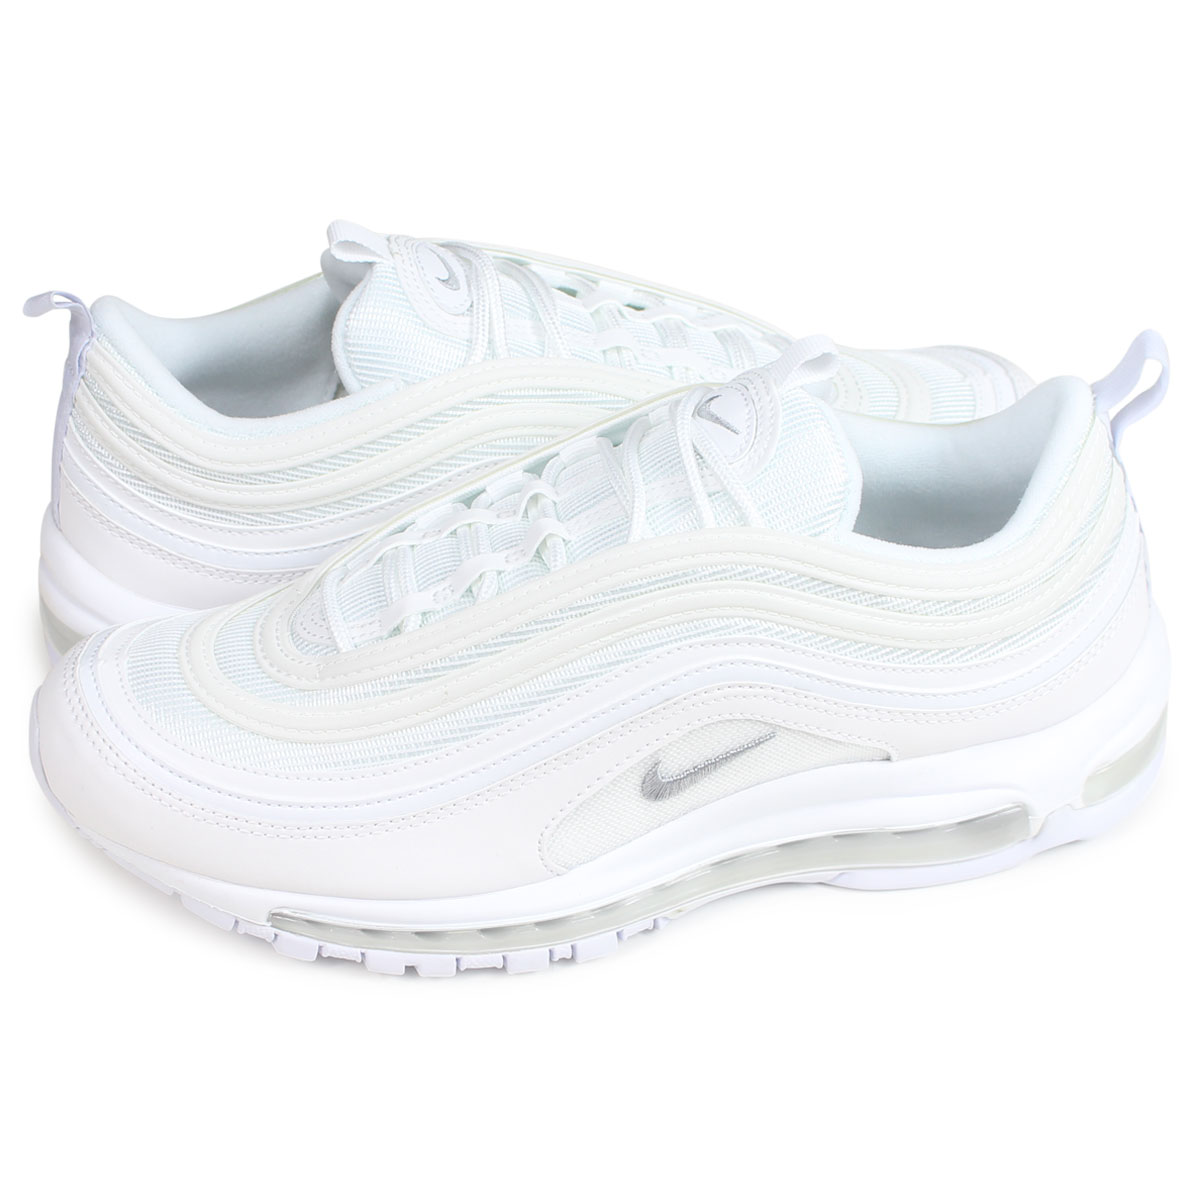 09f7b4e3d2 Nike NIKE Air Max 97 sneakers men AIR MAX 97 OG white 921,826-101 ...